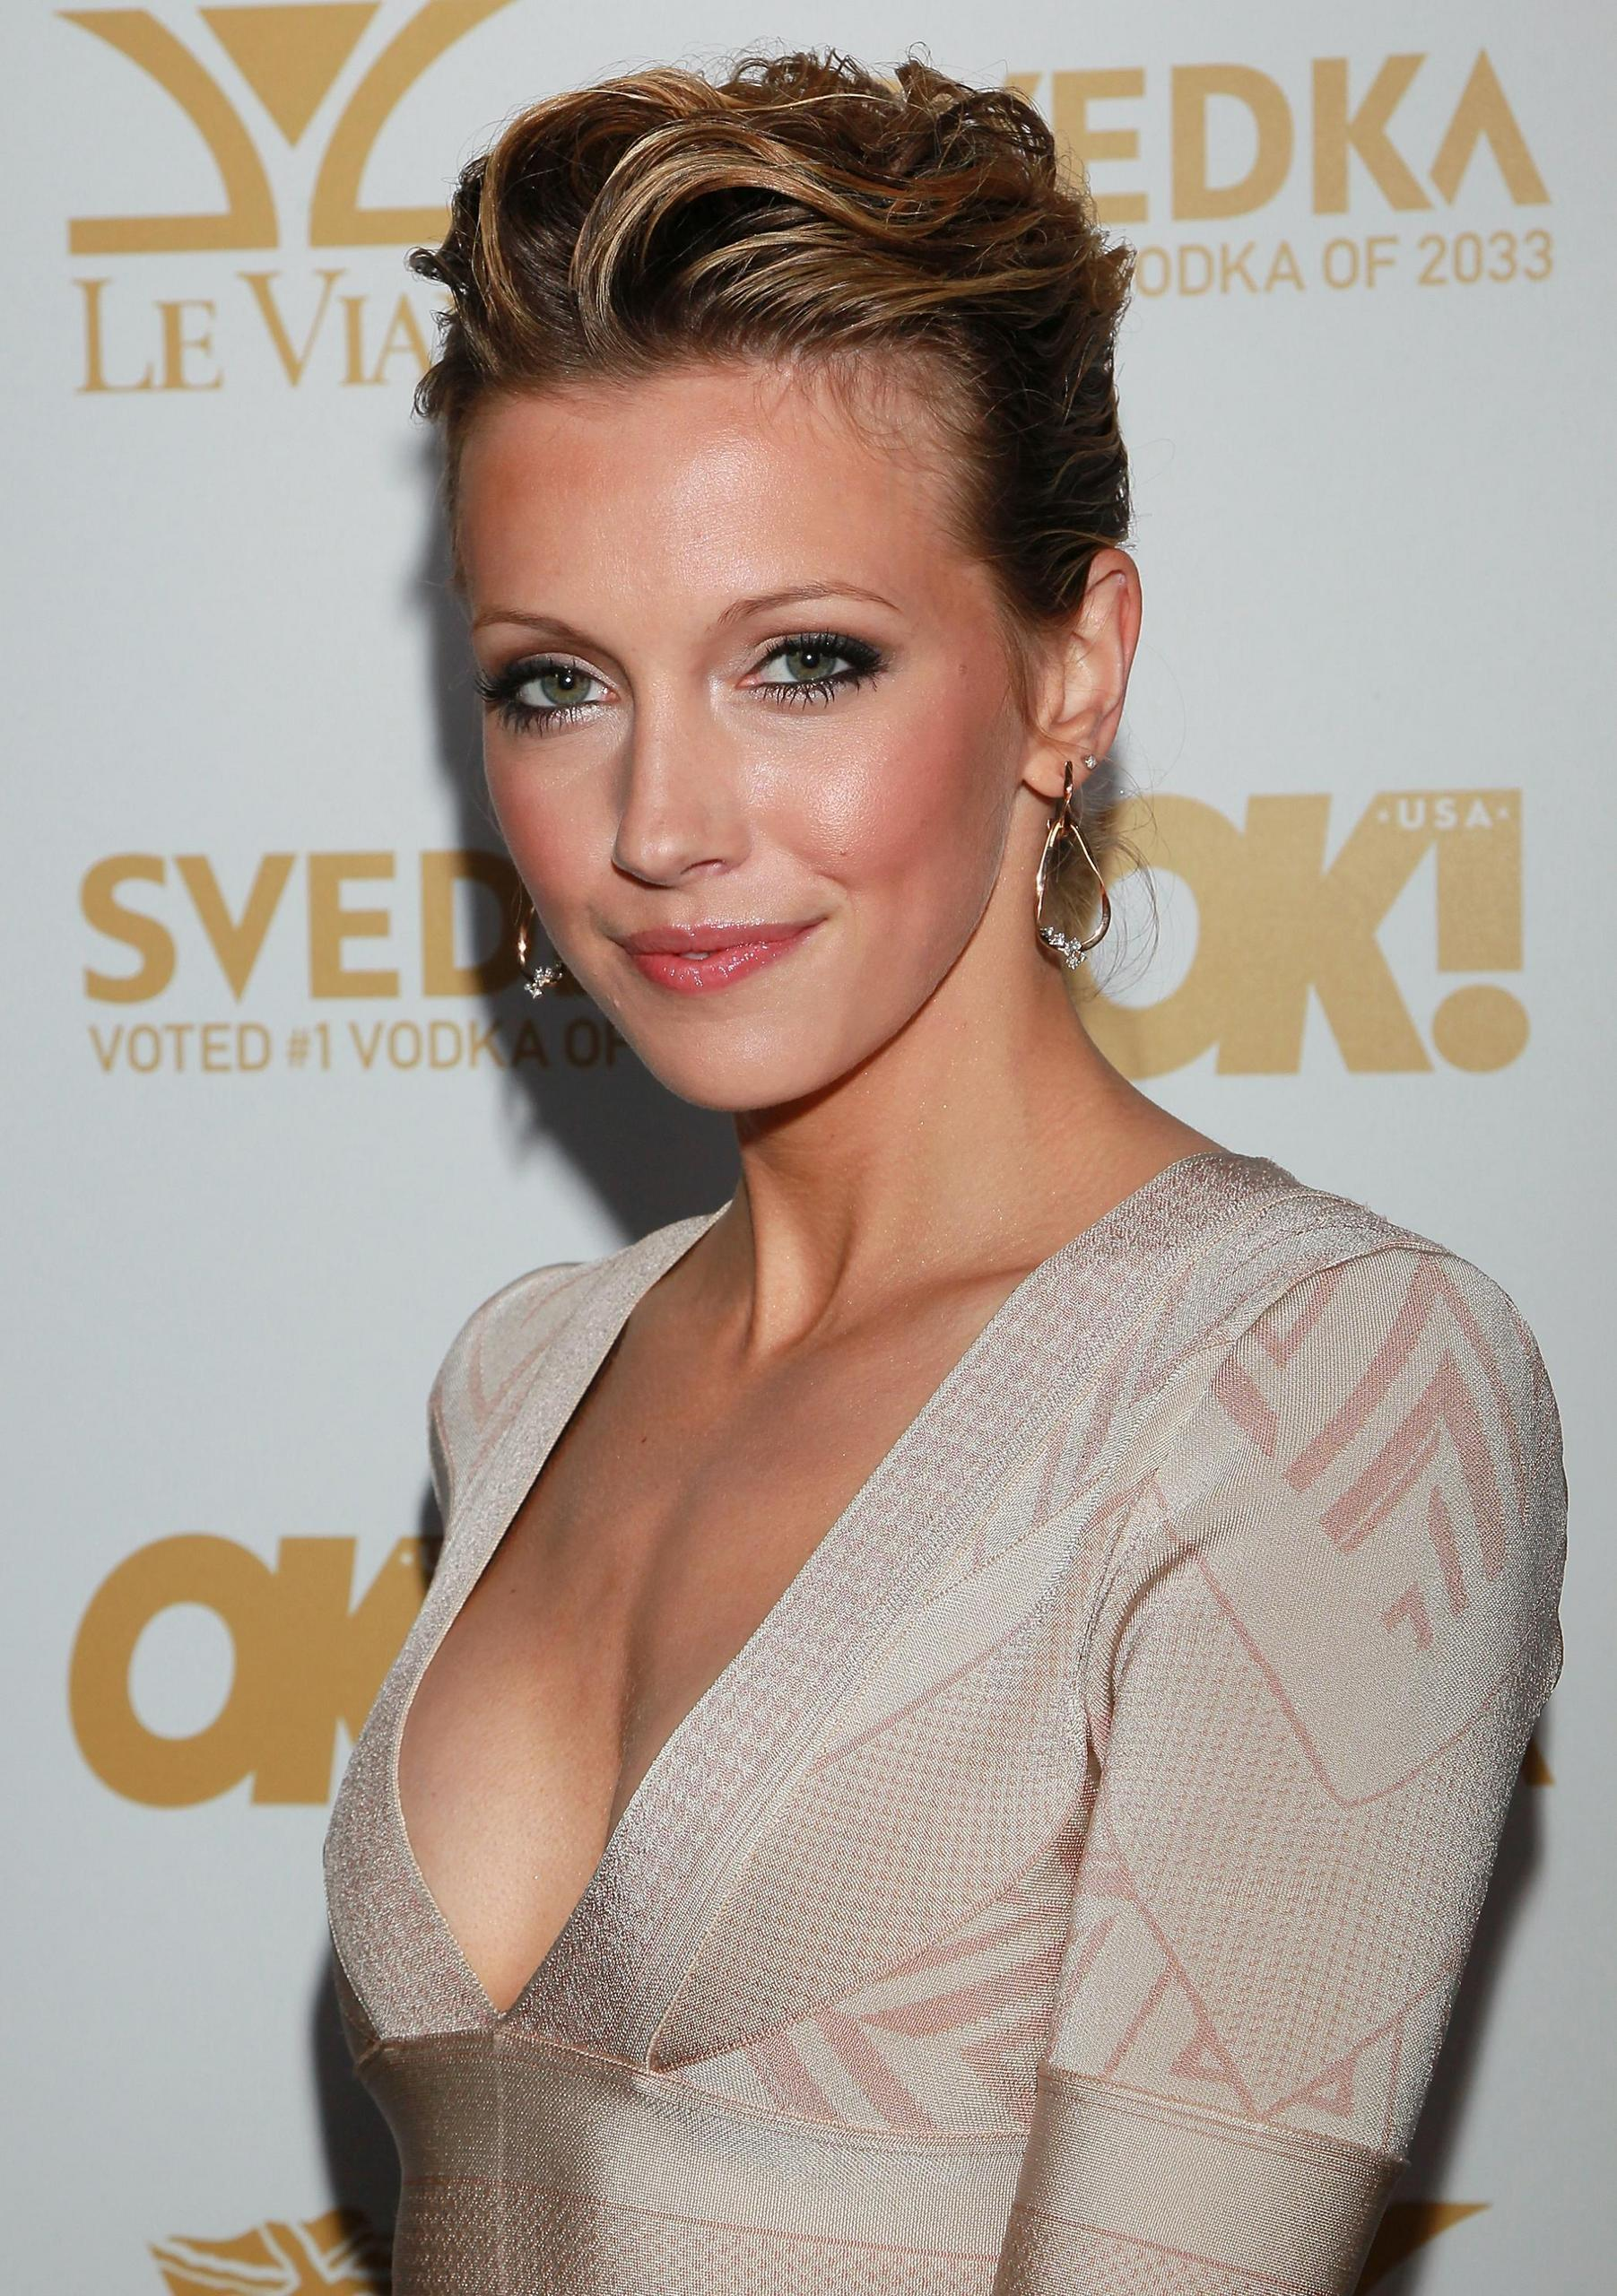 Katie Cassidy earned a  million dollar salary, leaving the net worth at 2.5 million in 2017